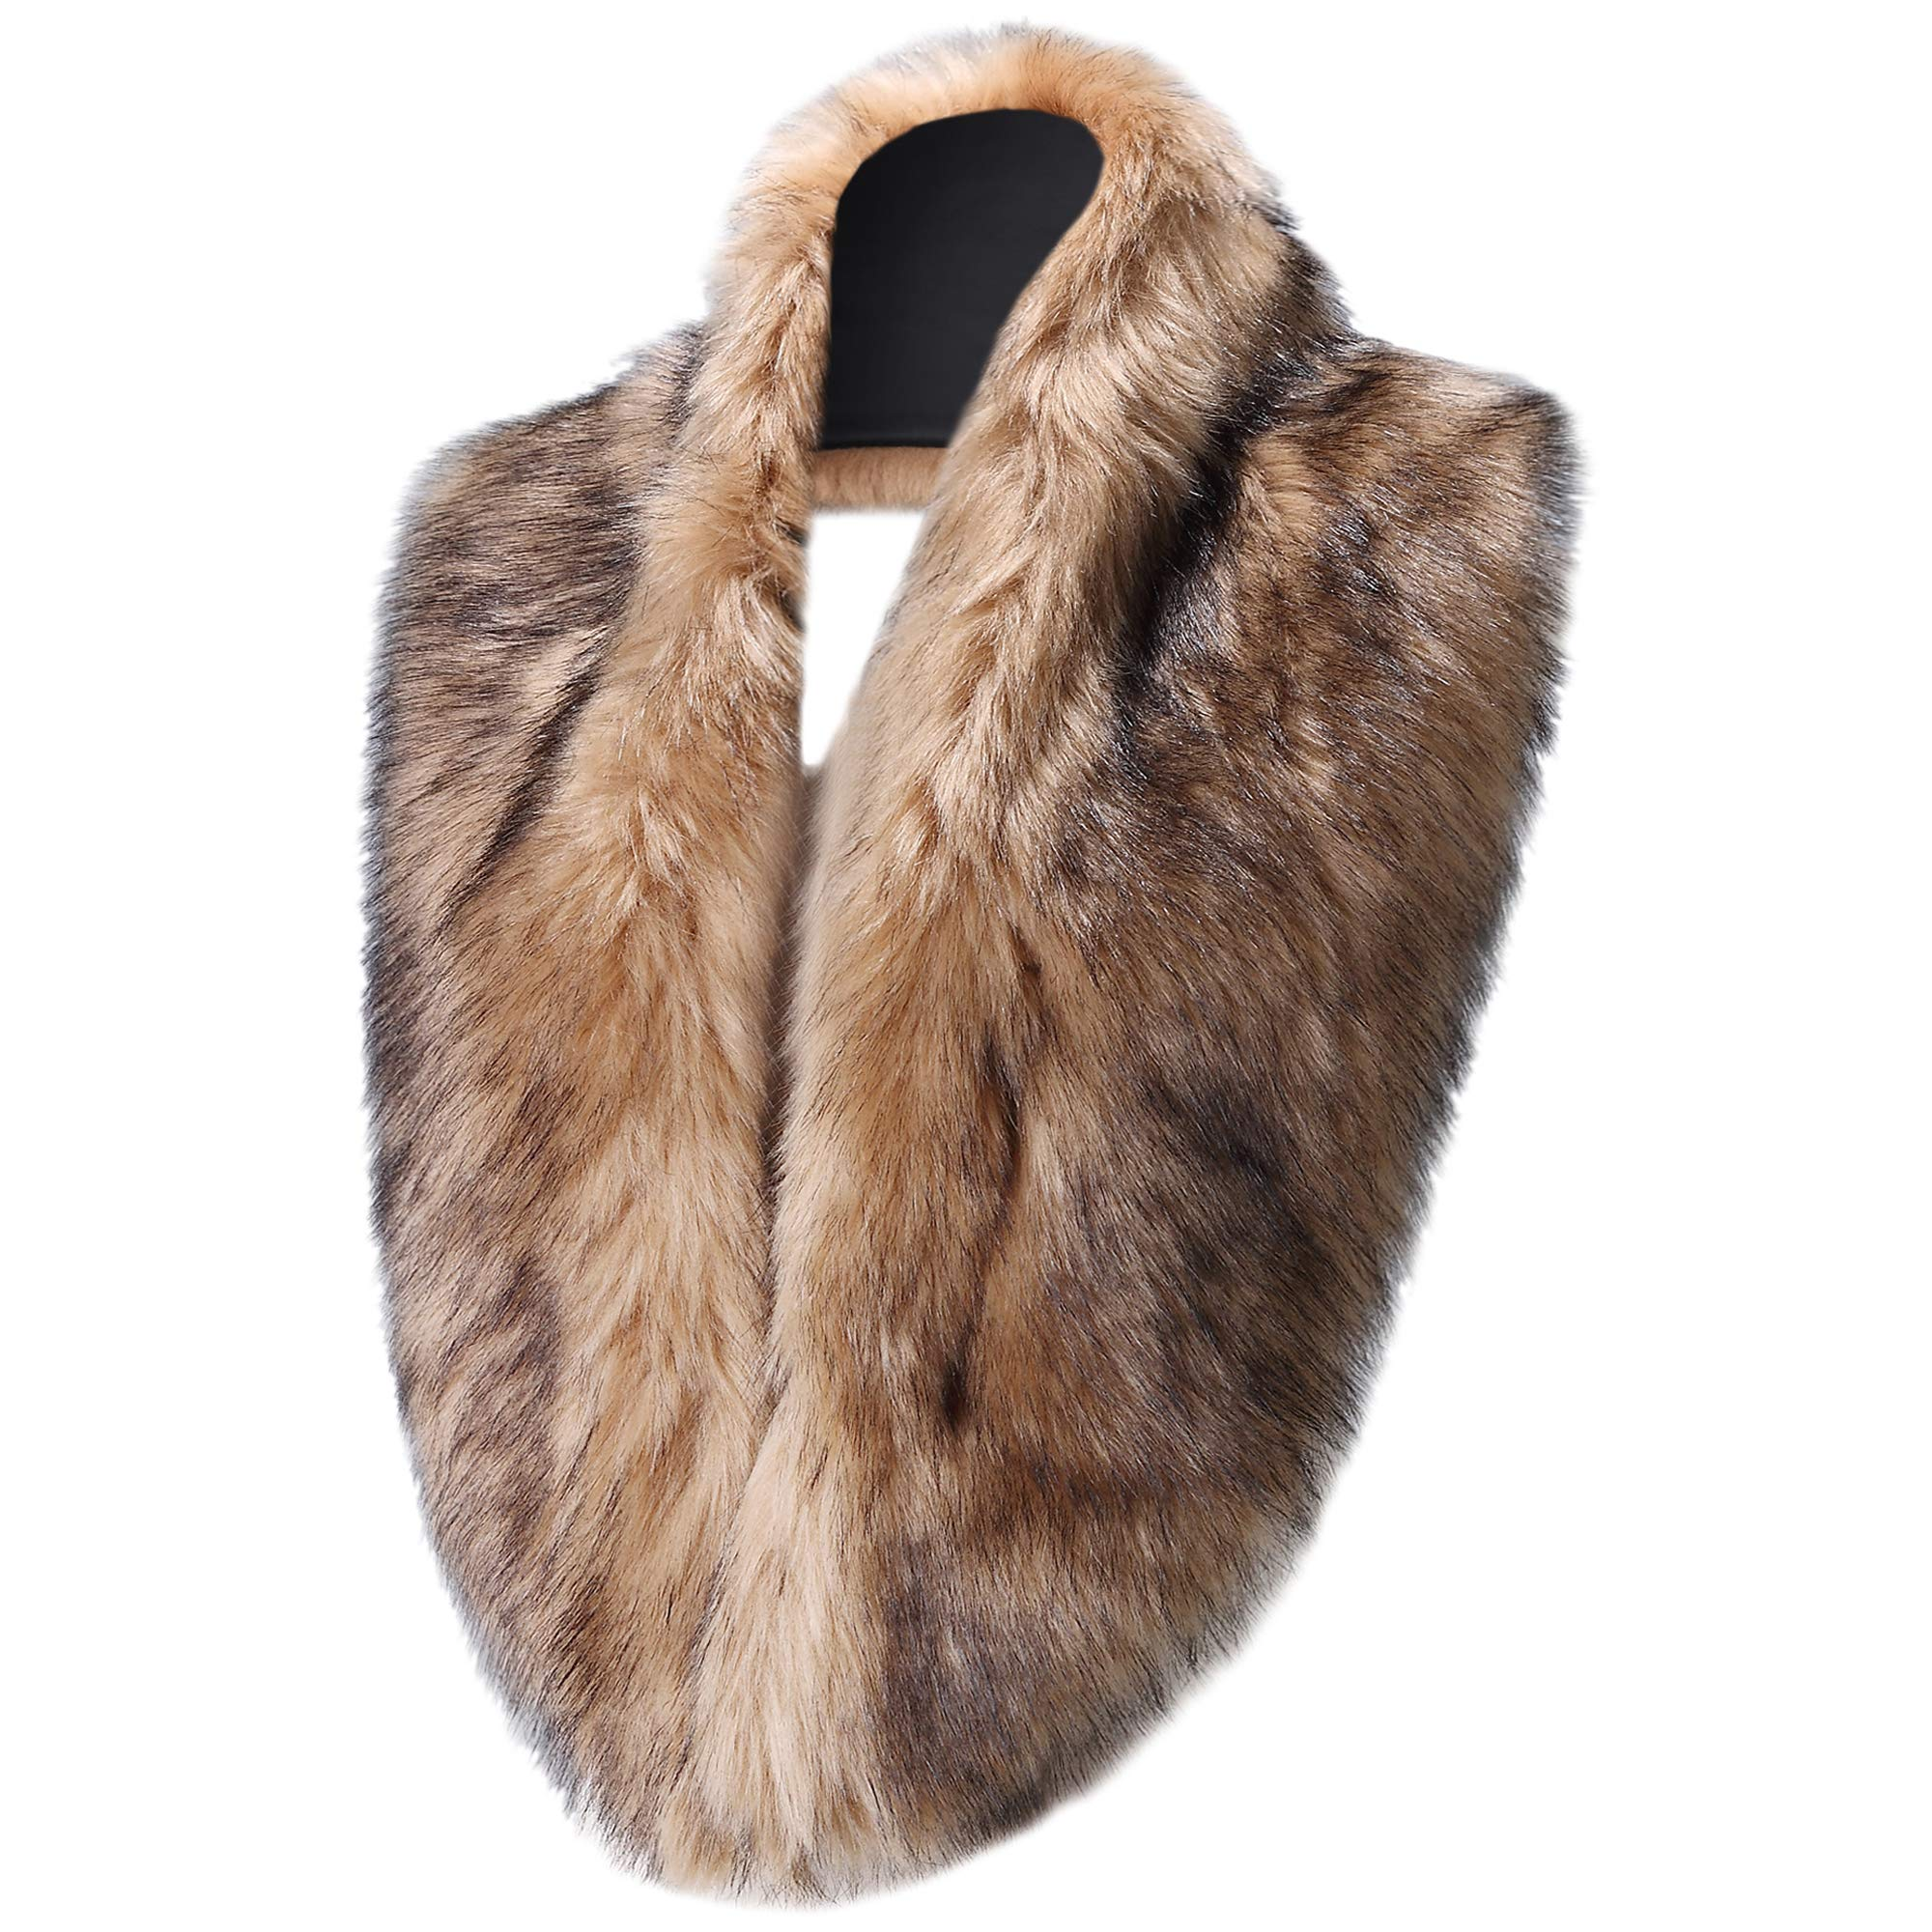 Caracilia Women's Faux Fur Collar for Winter Coat Neck Warmer Scarf Wrap Khaki Black CA96